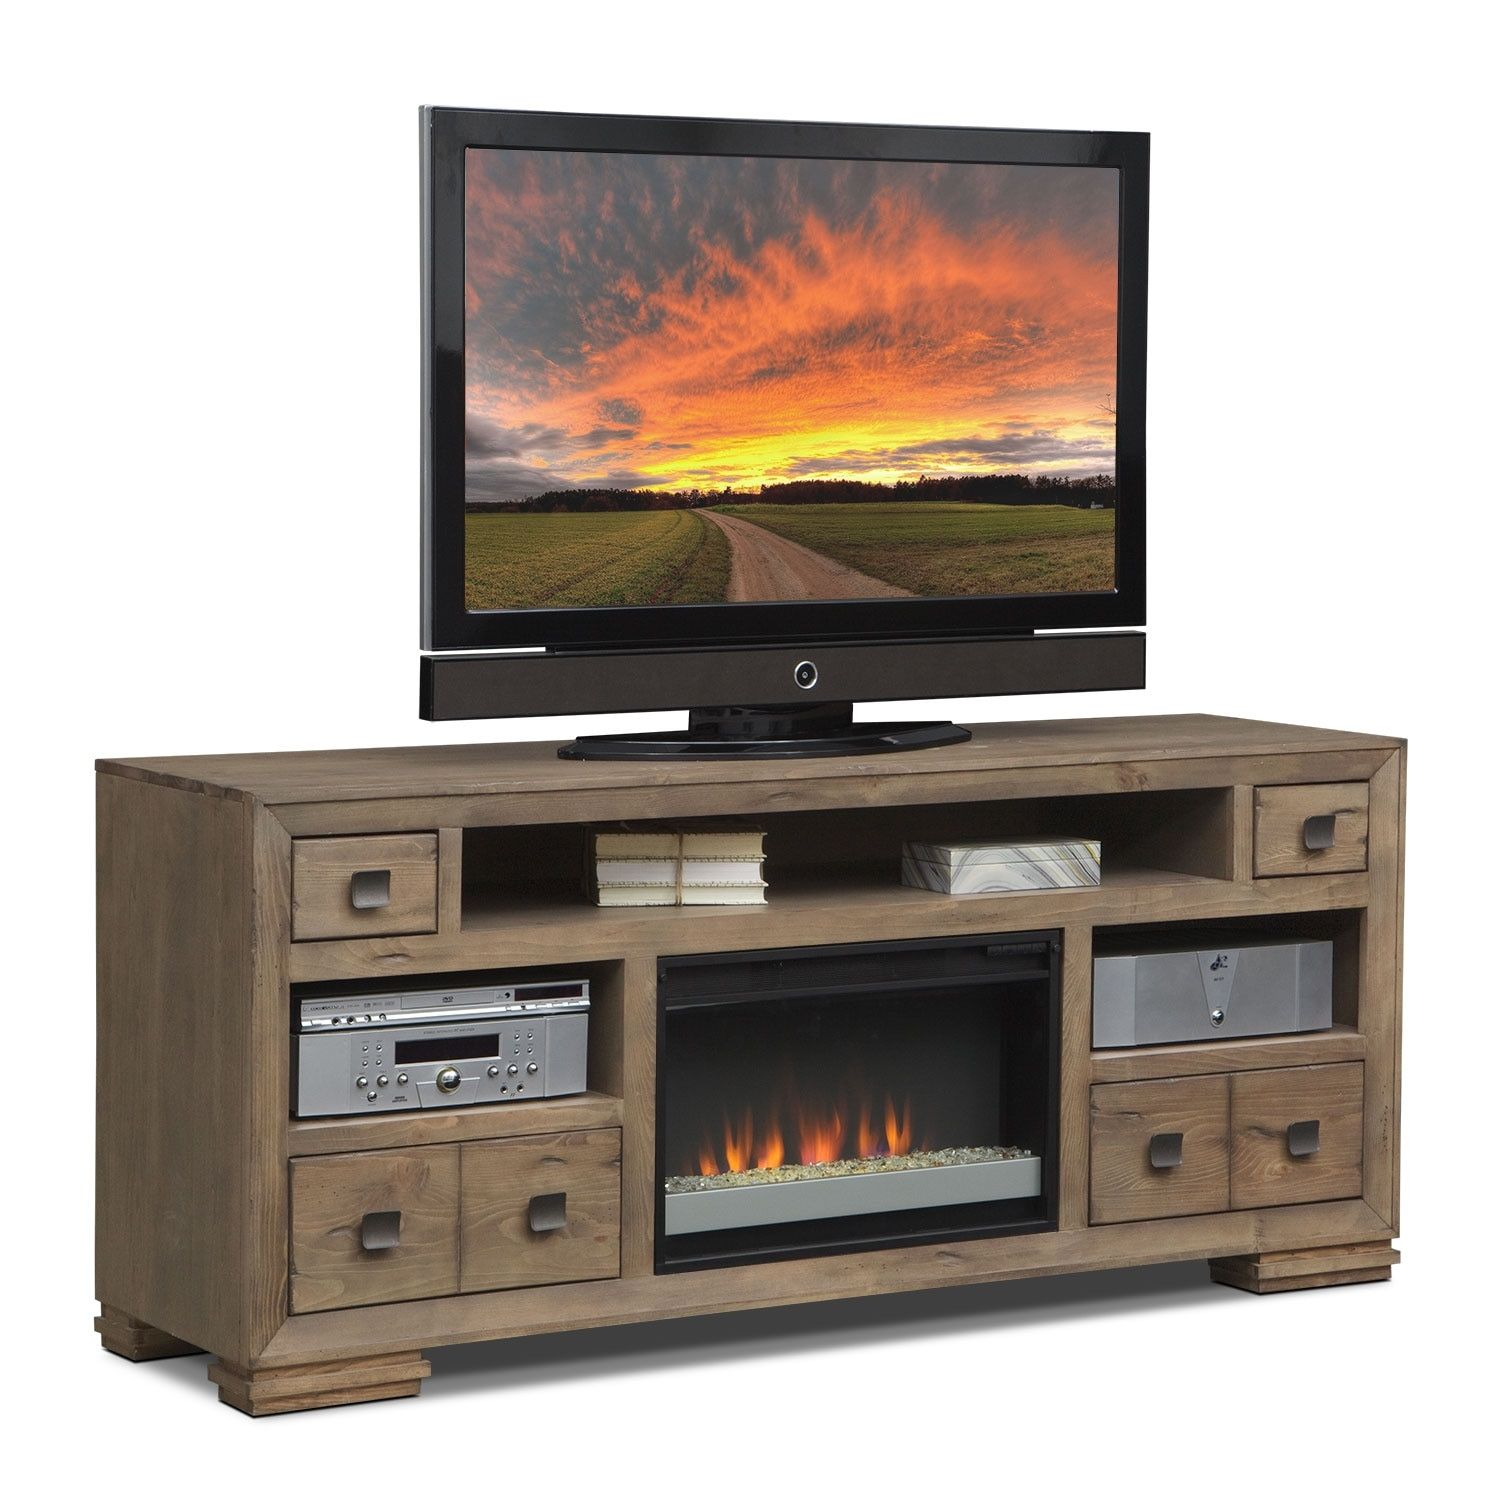 brick electric piece search fireplace media firebox home centre decor entertainment tv the accent opening center log fireplaces with furniture and camden